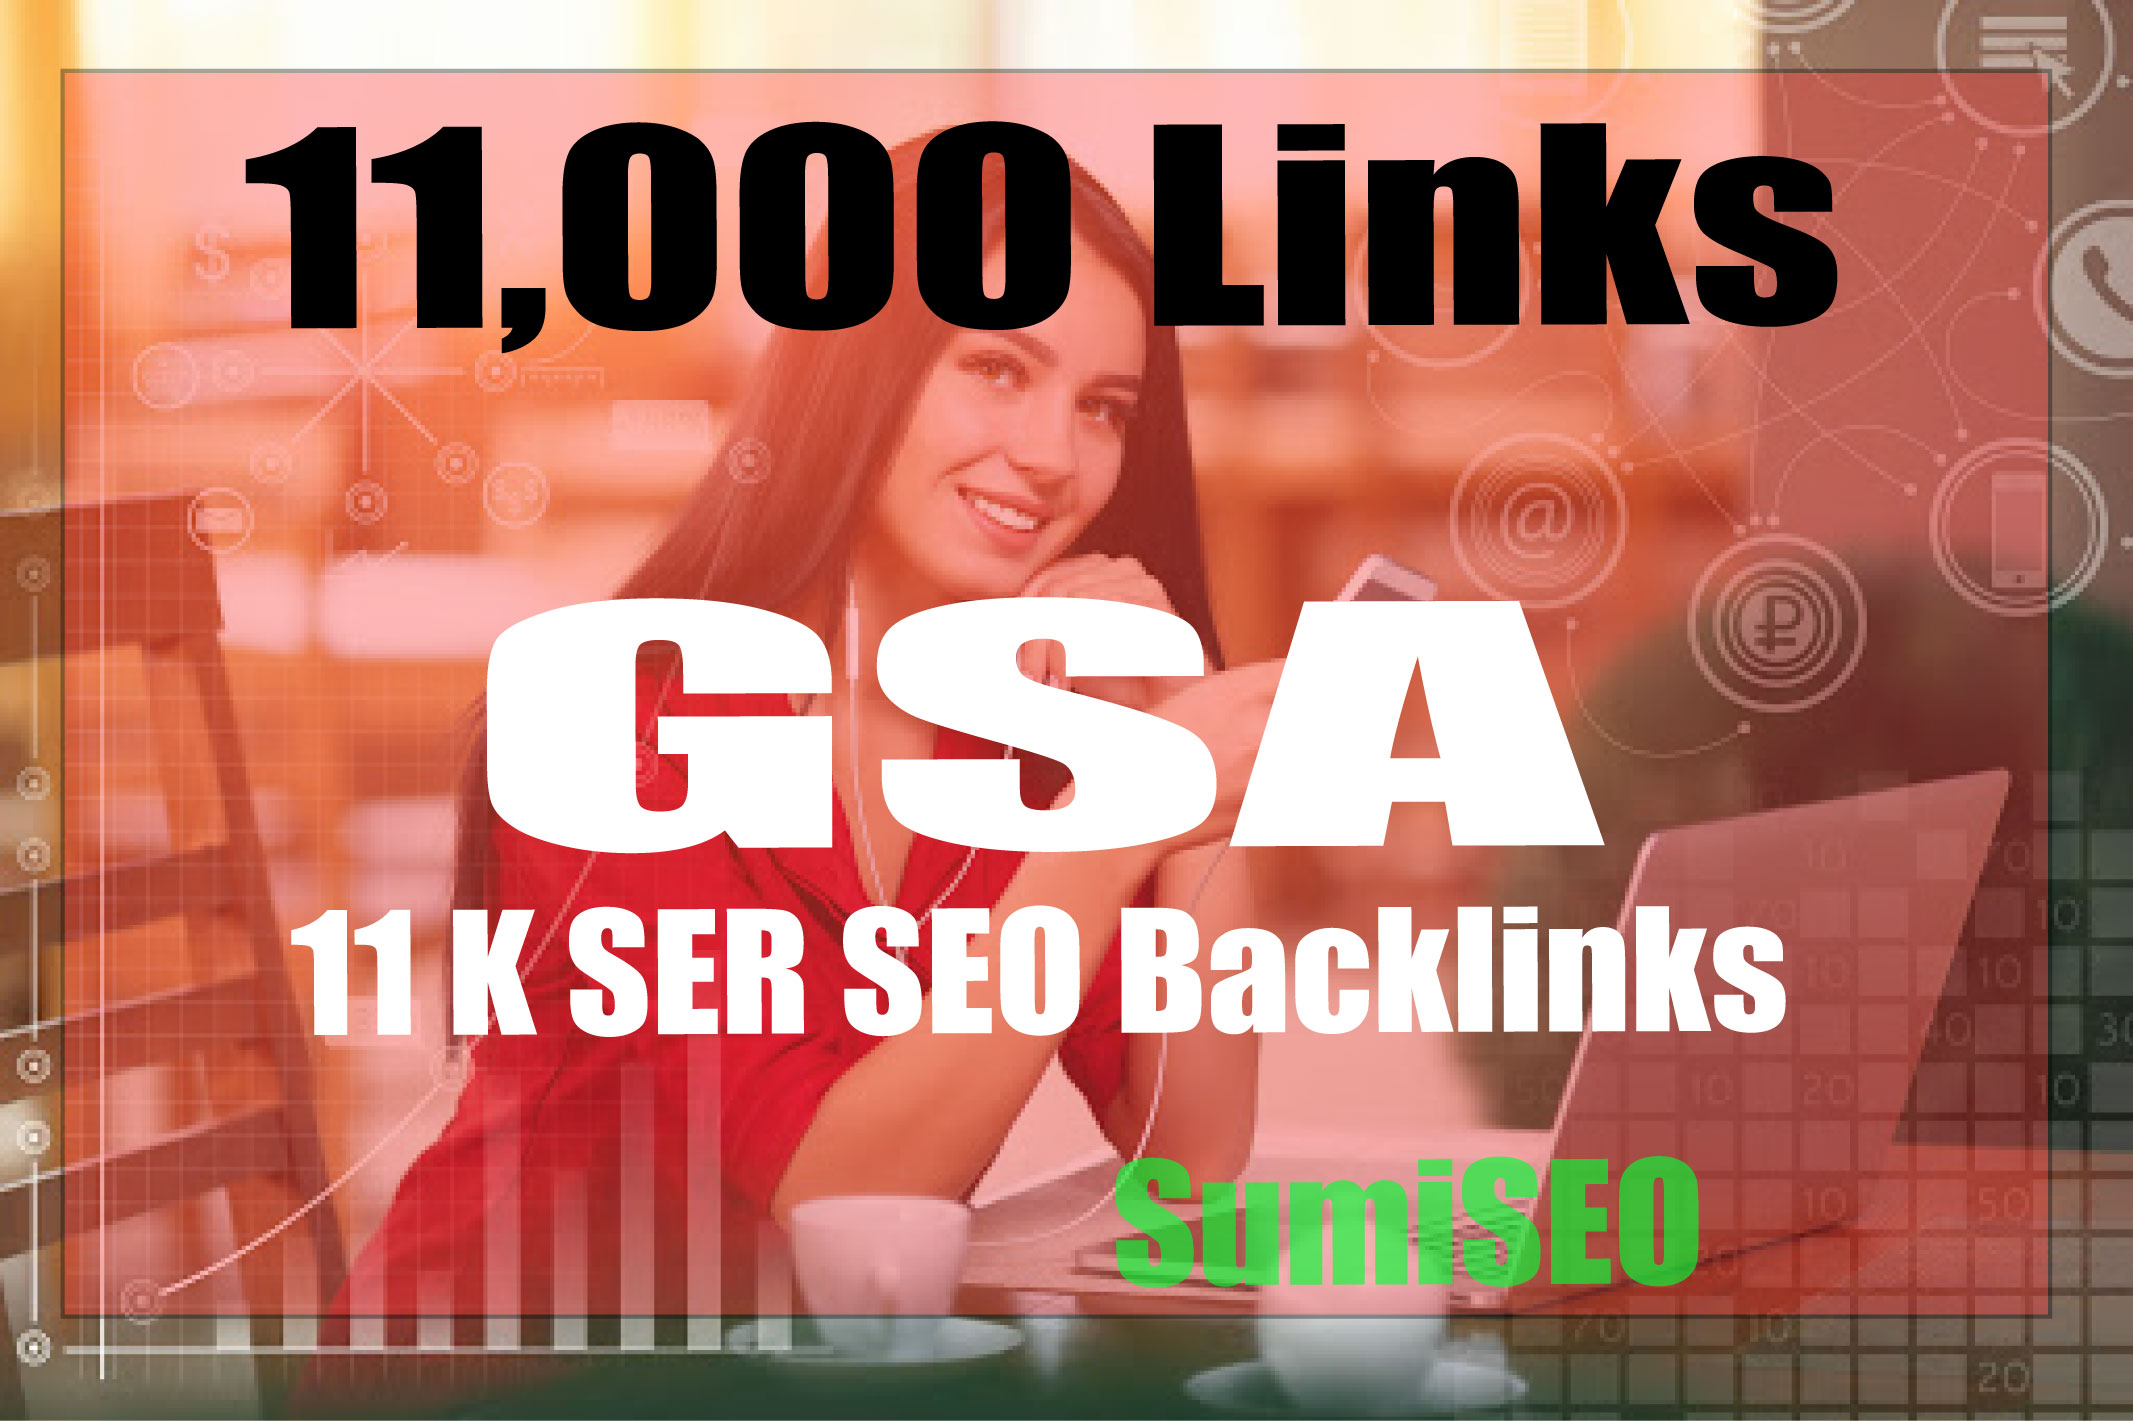 SEO create verified 11,000 GSA backlinks for your site booster for higher rank